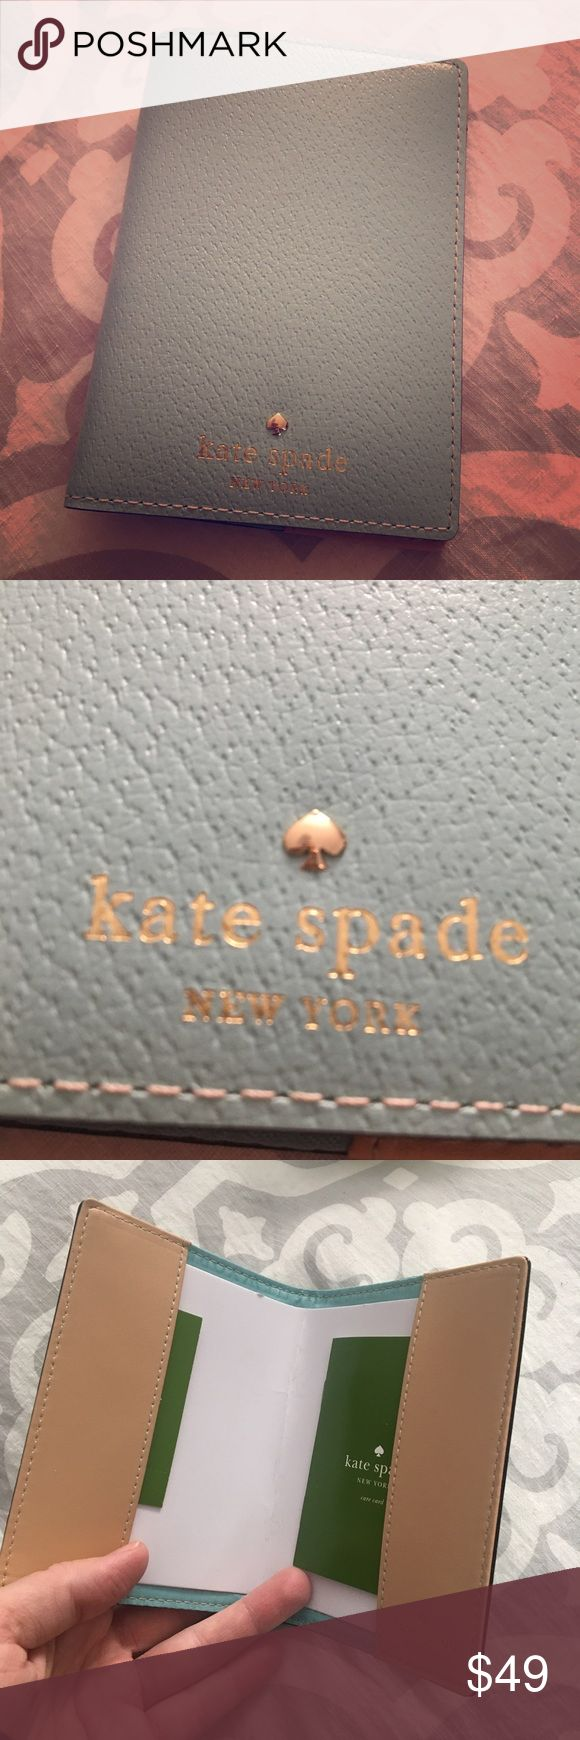 Kate Spade Minty Bluish Passport Holder Gorgeous passport case! Never used! No trades, ships fast! kate spade Accessories